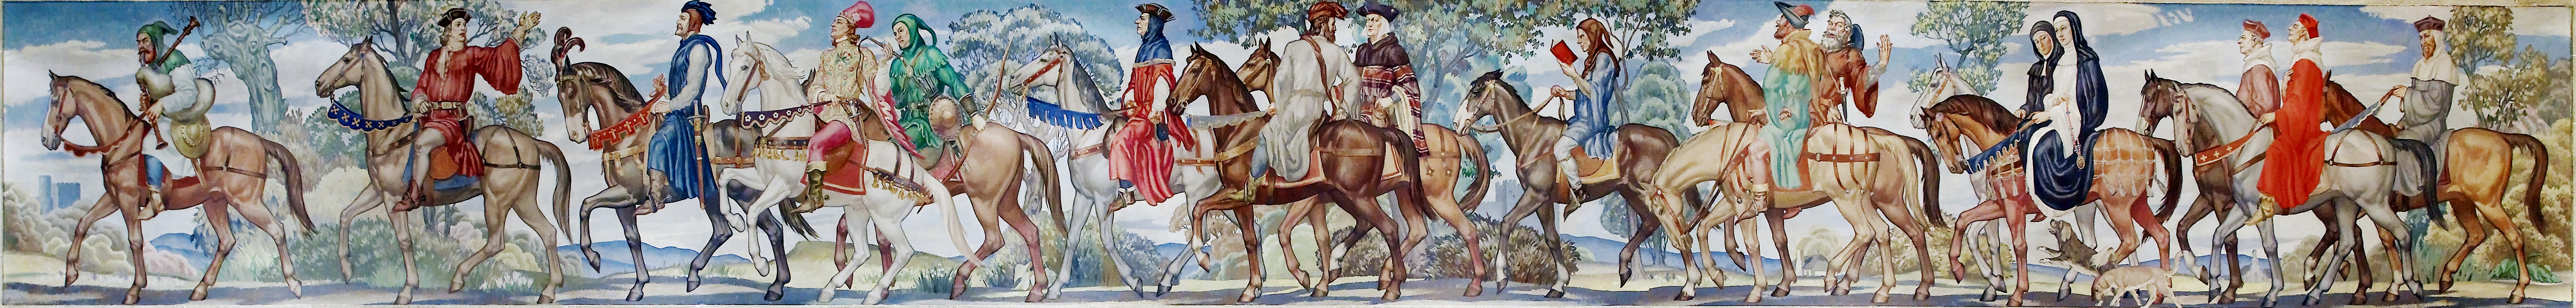 an analysis of the medieval christian church in the canterbury tales by geoffrey chaucer Radical chaucer: critique of church as geoffrey chaucer has existed in and desire of the church11 the canterbury tales then particularly.